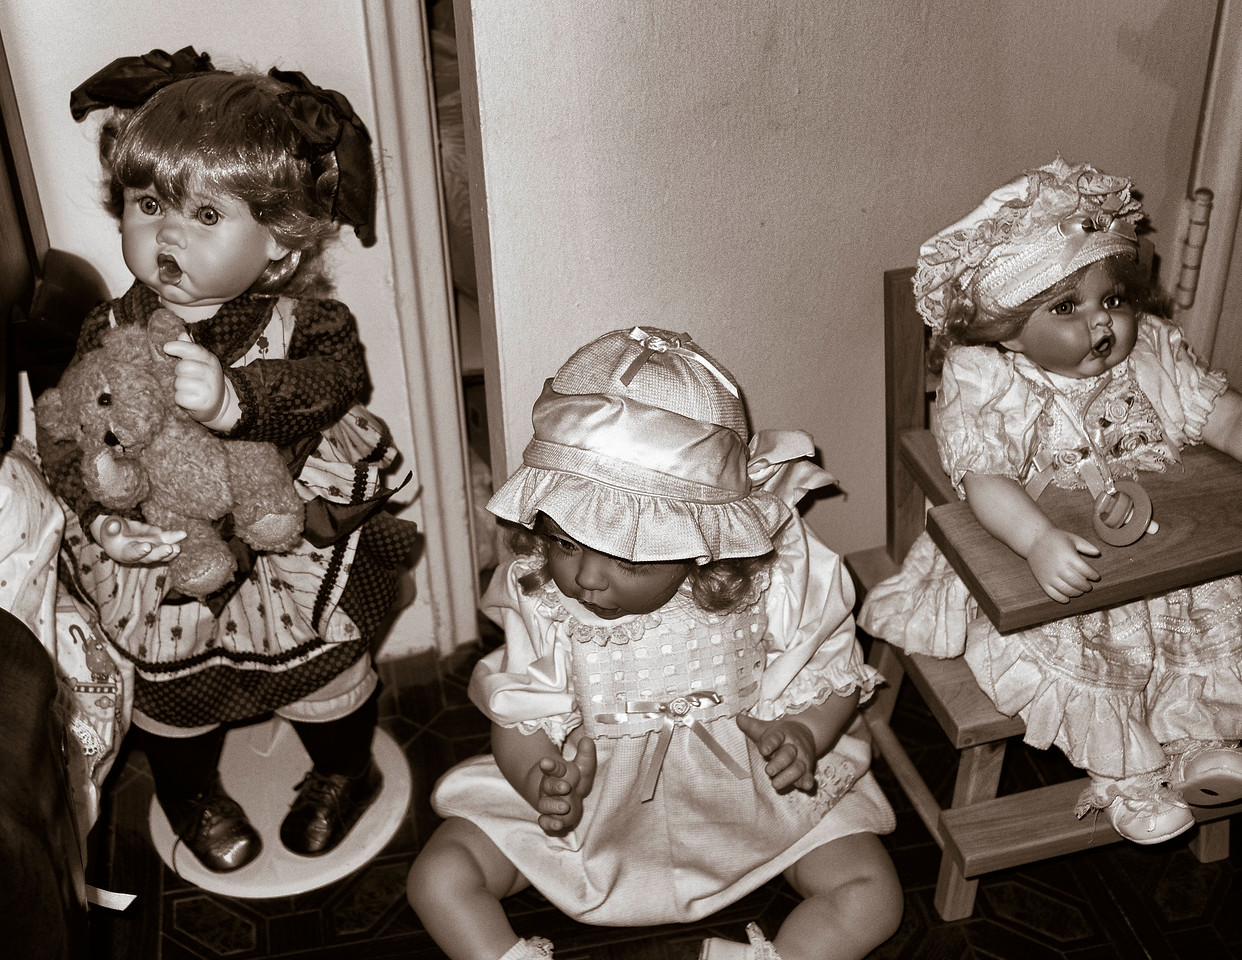 A gallery of doll portraits from a private collection.